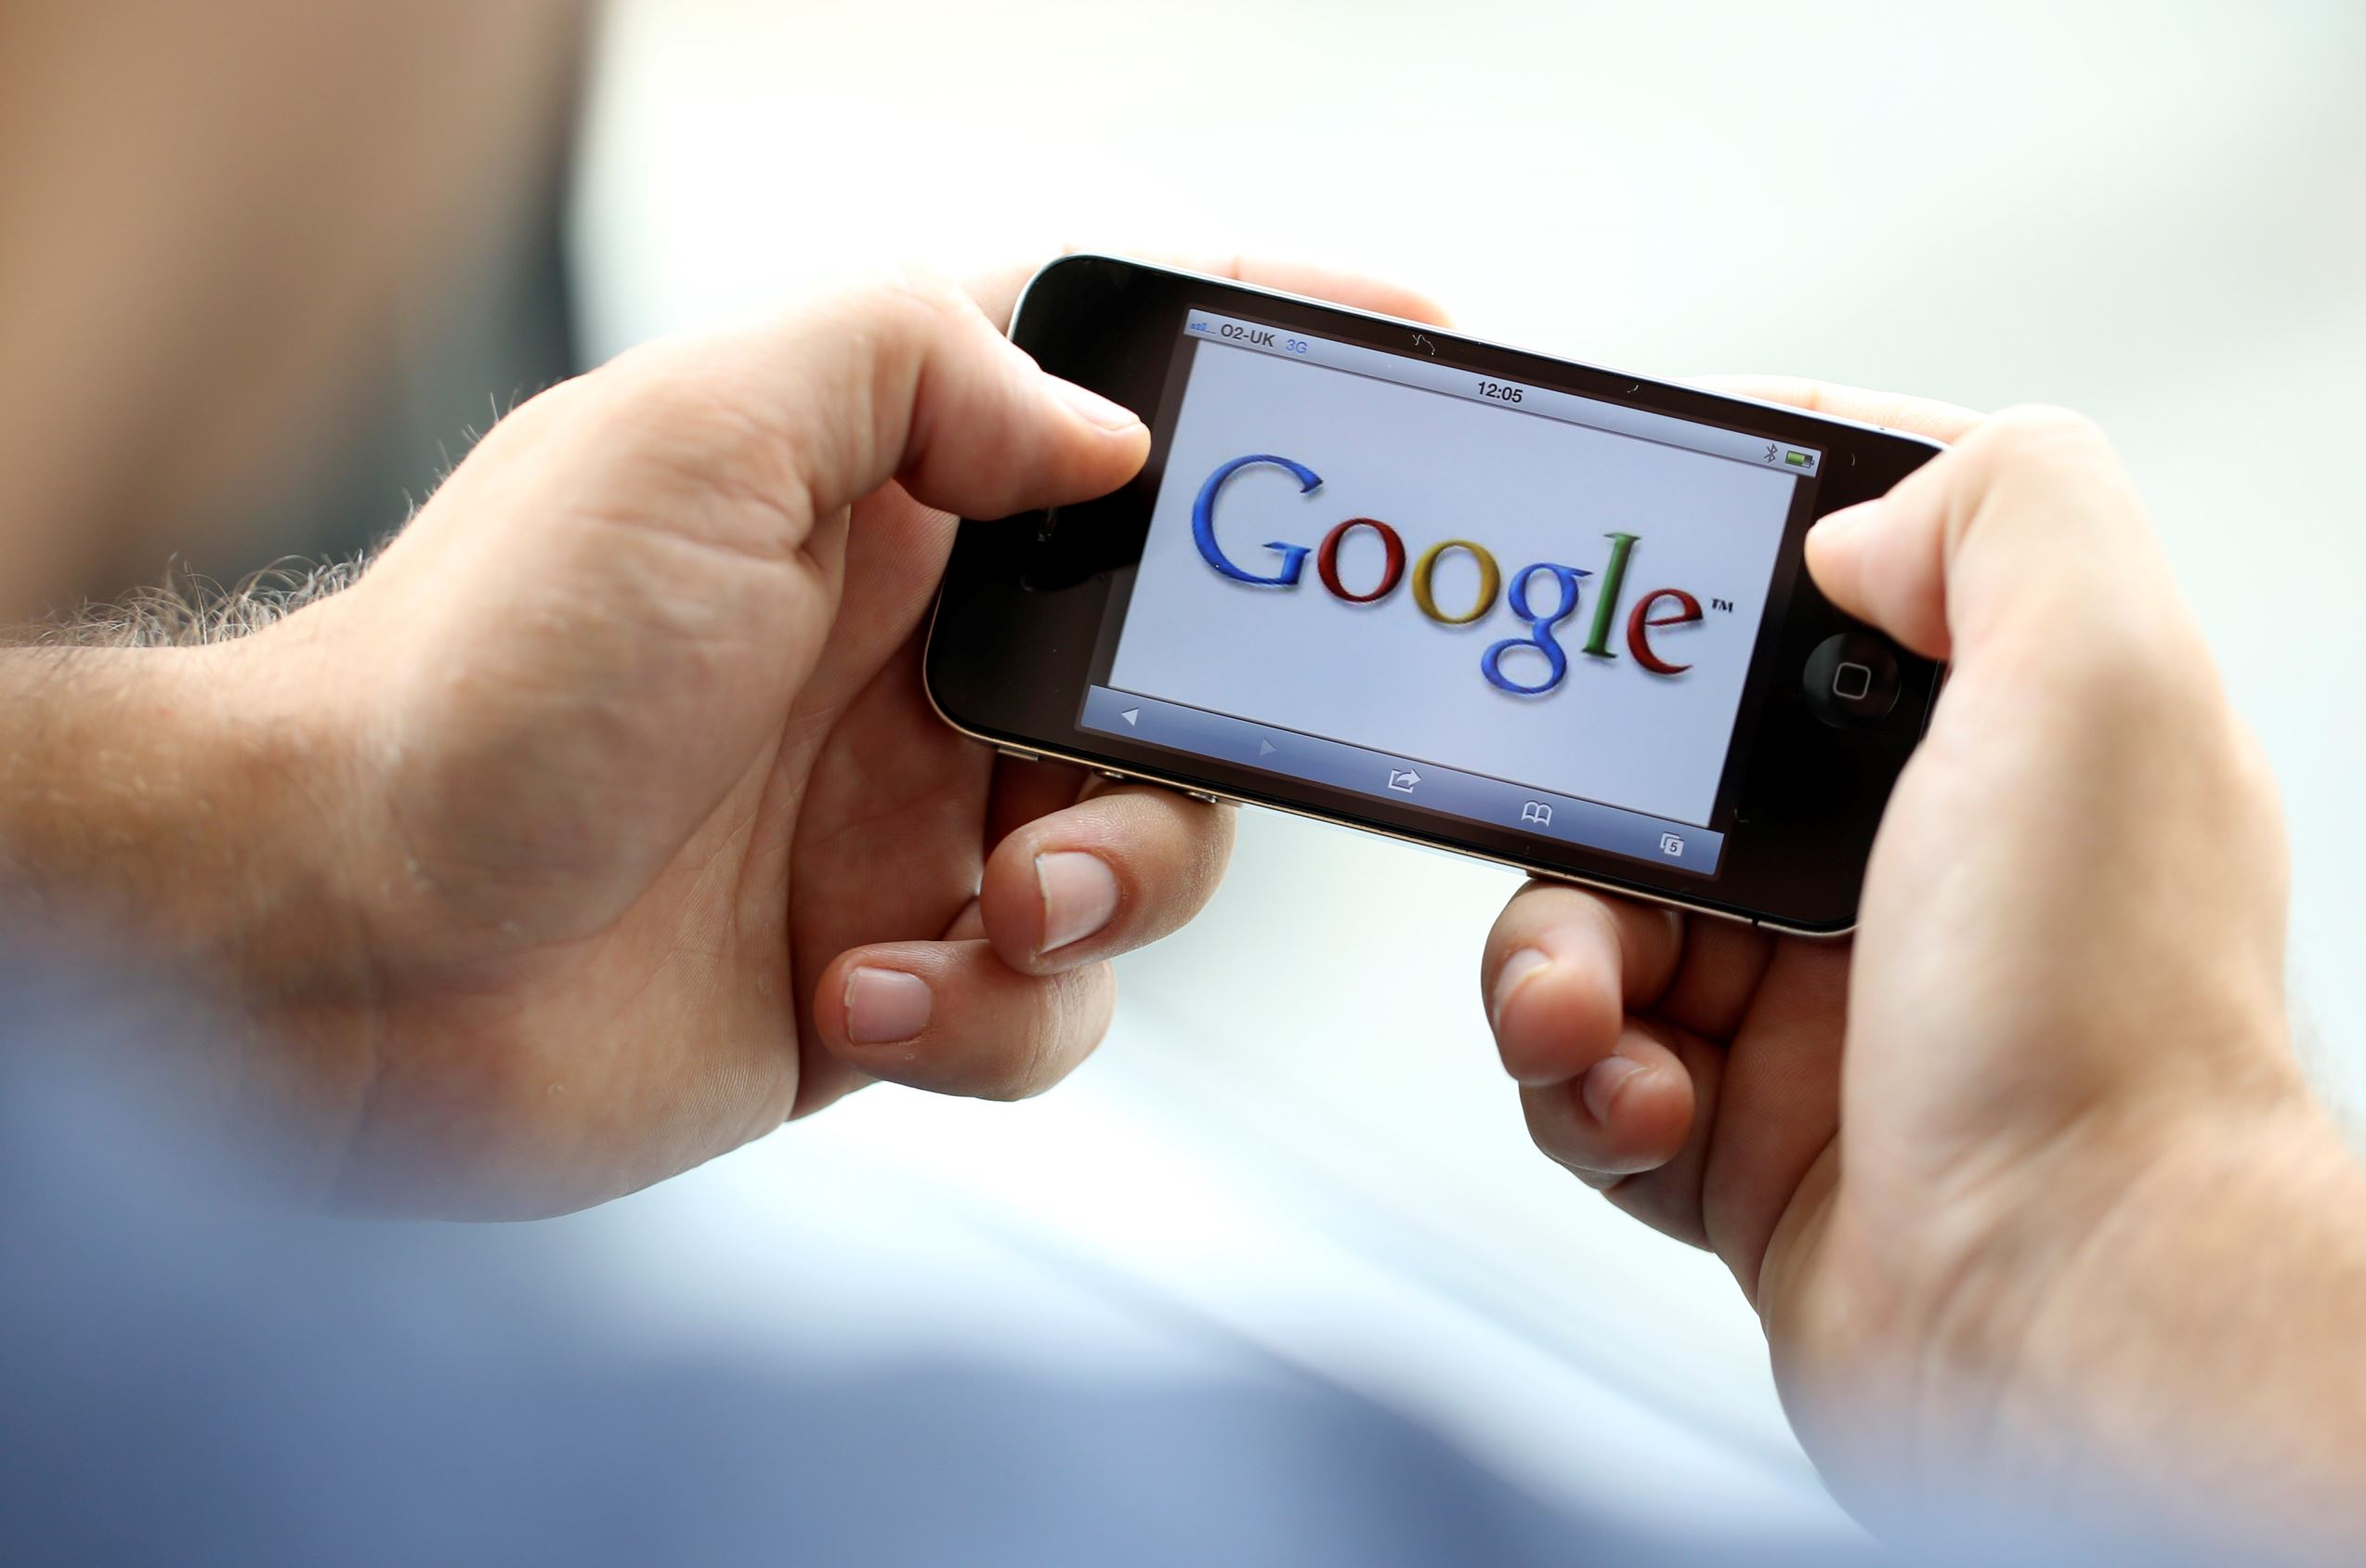 The Google Inc. company logo is seen on an Apple Inc. iPhone 4 smartphone in London, U.K., on Wednesday, Aug. 29, 2012.